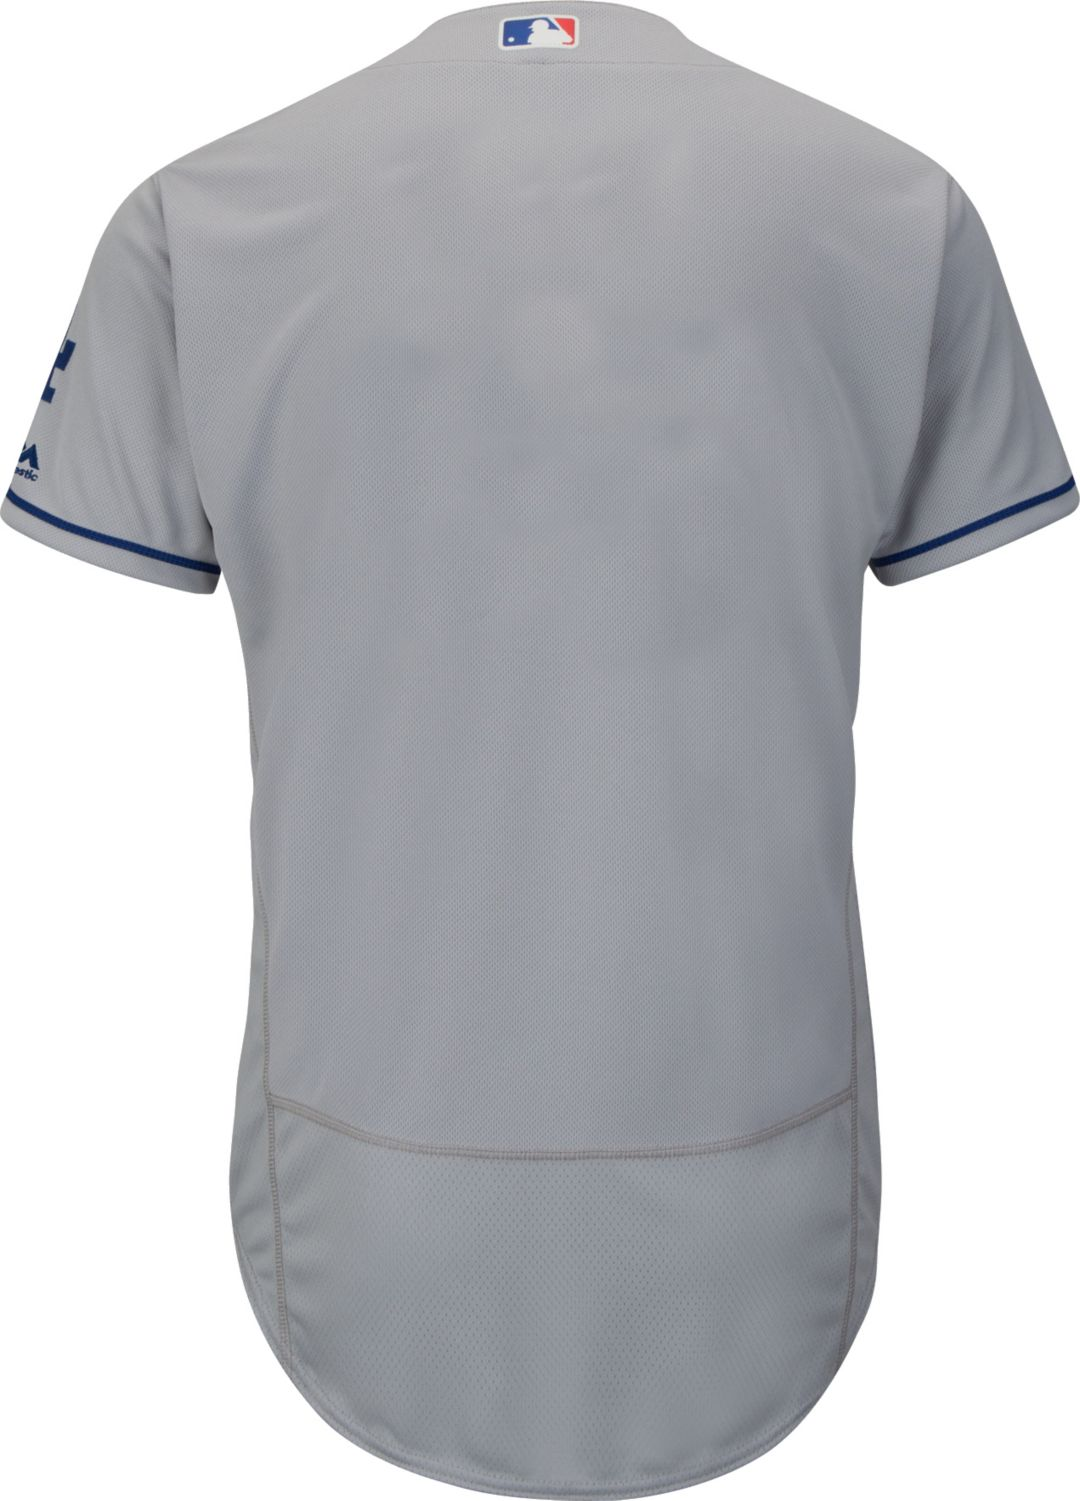 46bb66f9 Majestic Men's Authentic Los Angeles Dodgers Road Grey Flex Base On-Field  Jersey. noImageFound. Previous. 1. 2. 3